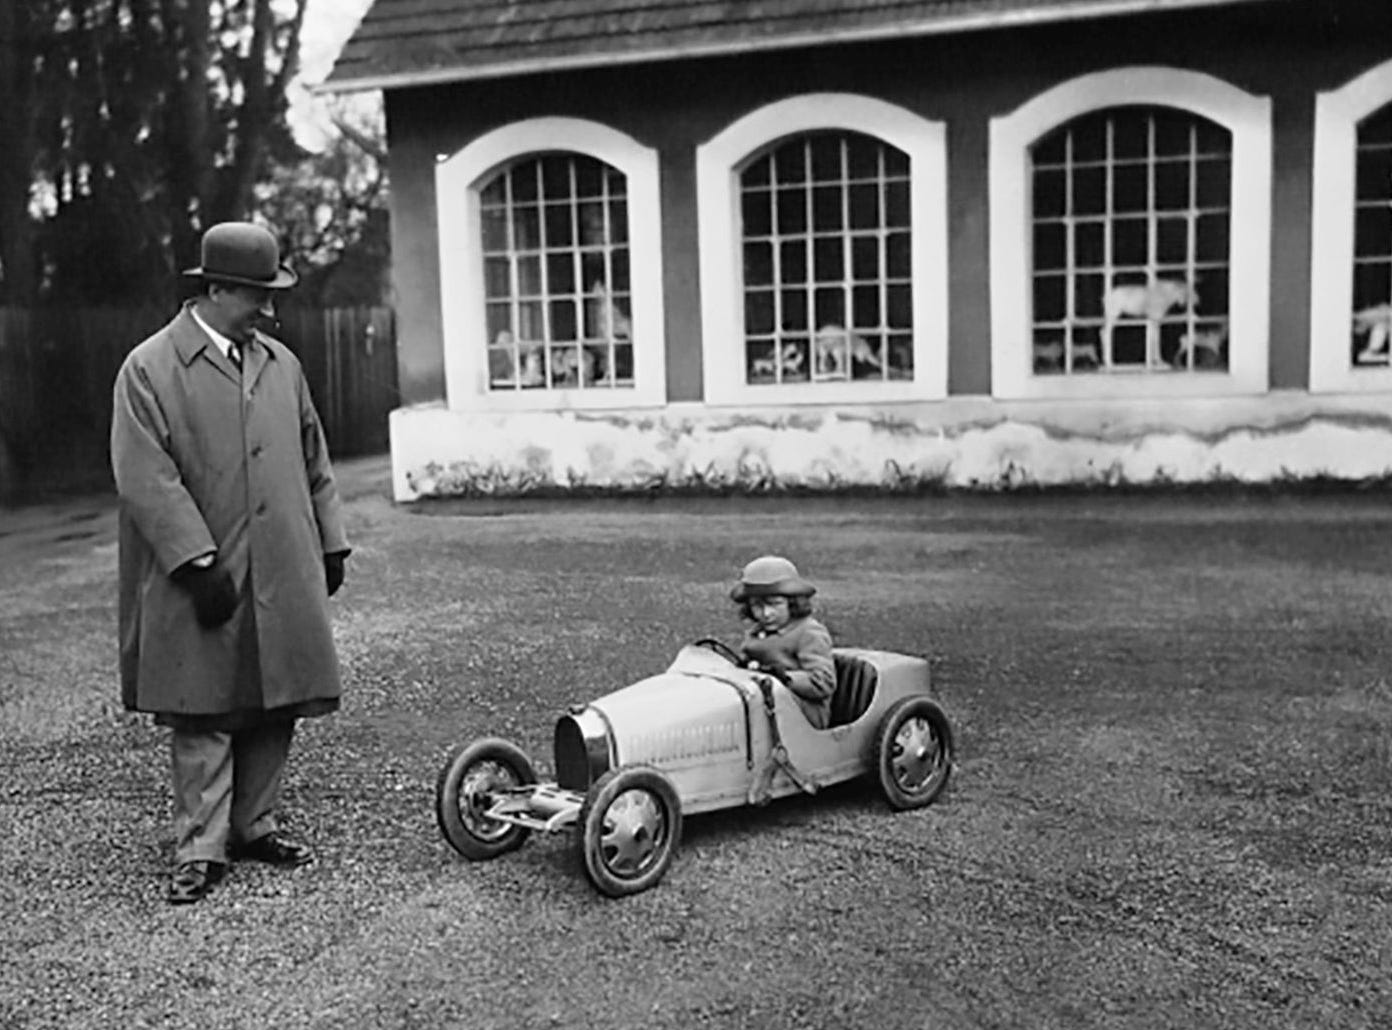 In 1926, Ettore Bugatti made a small-scale Type 35 roadster for his son Roland's birthday.